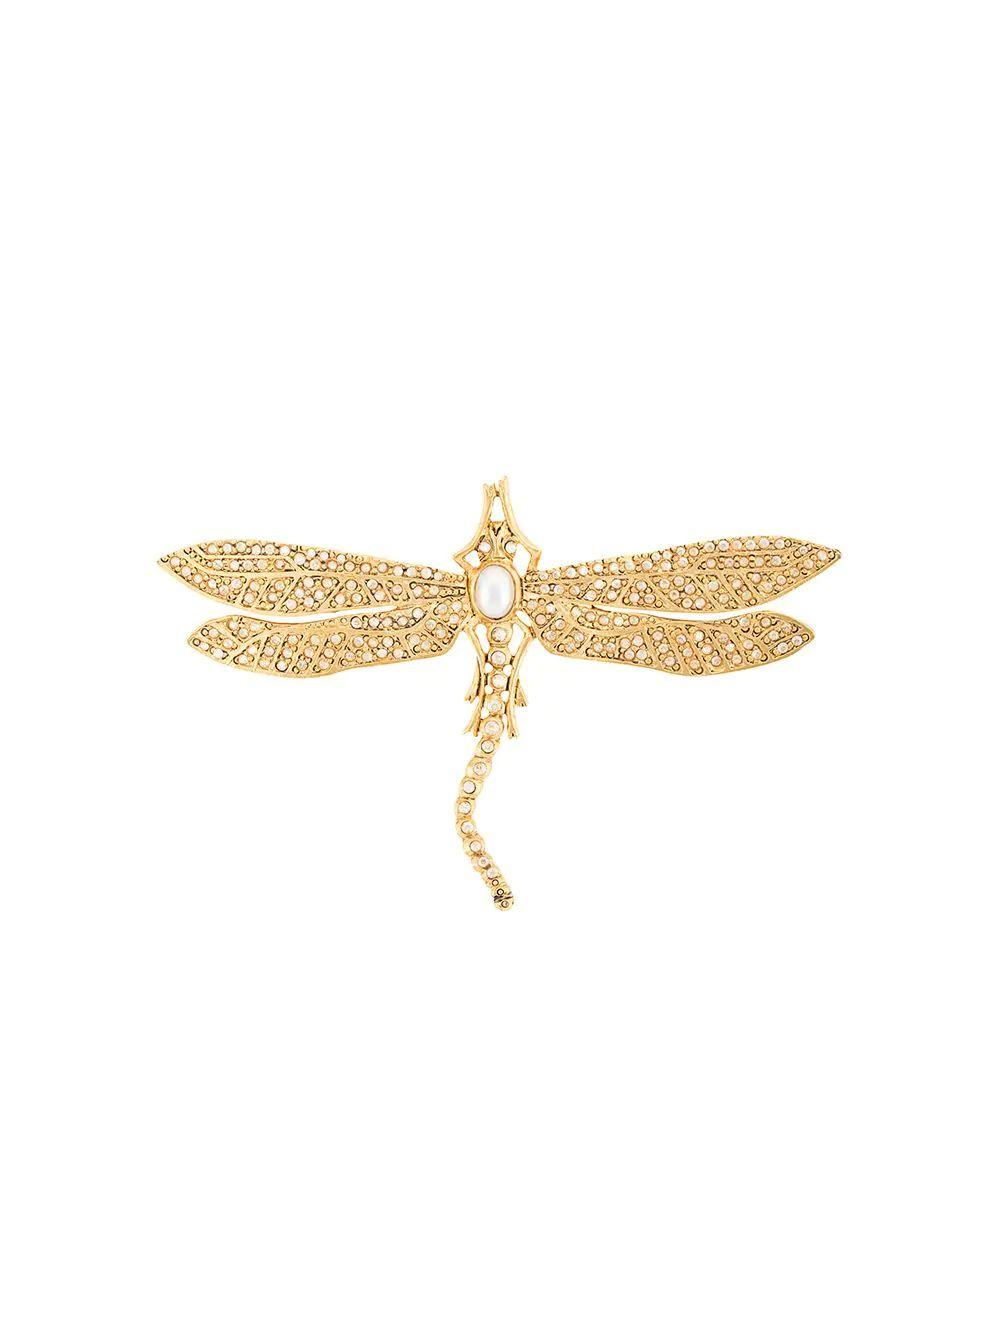 Pave Pearl Dragonfly Brooch